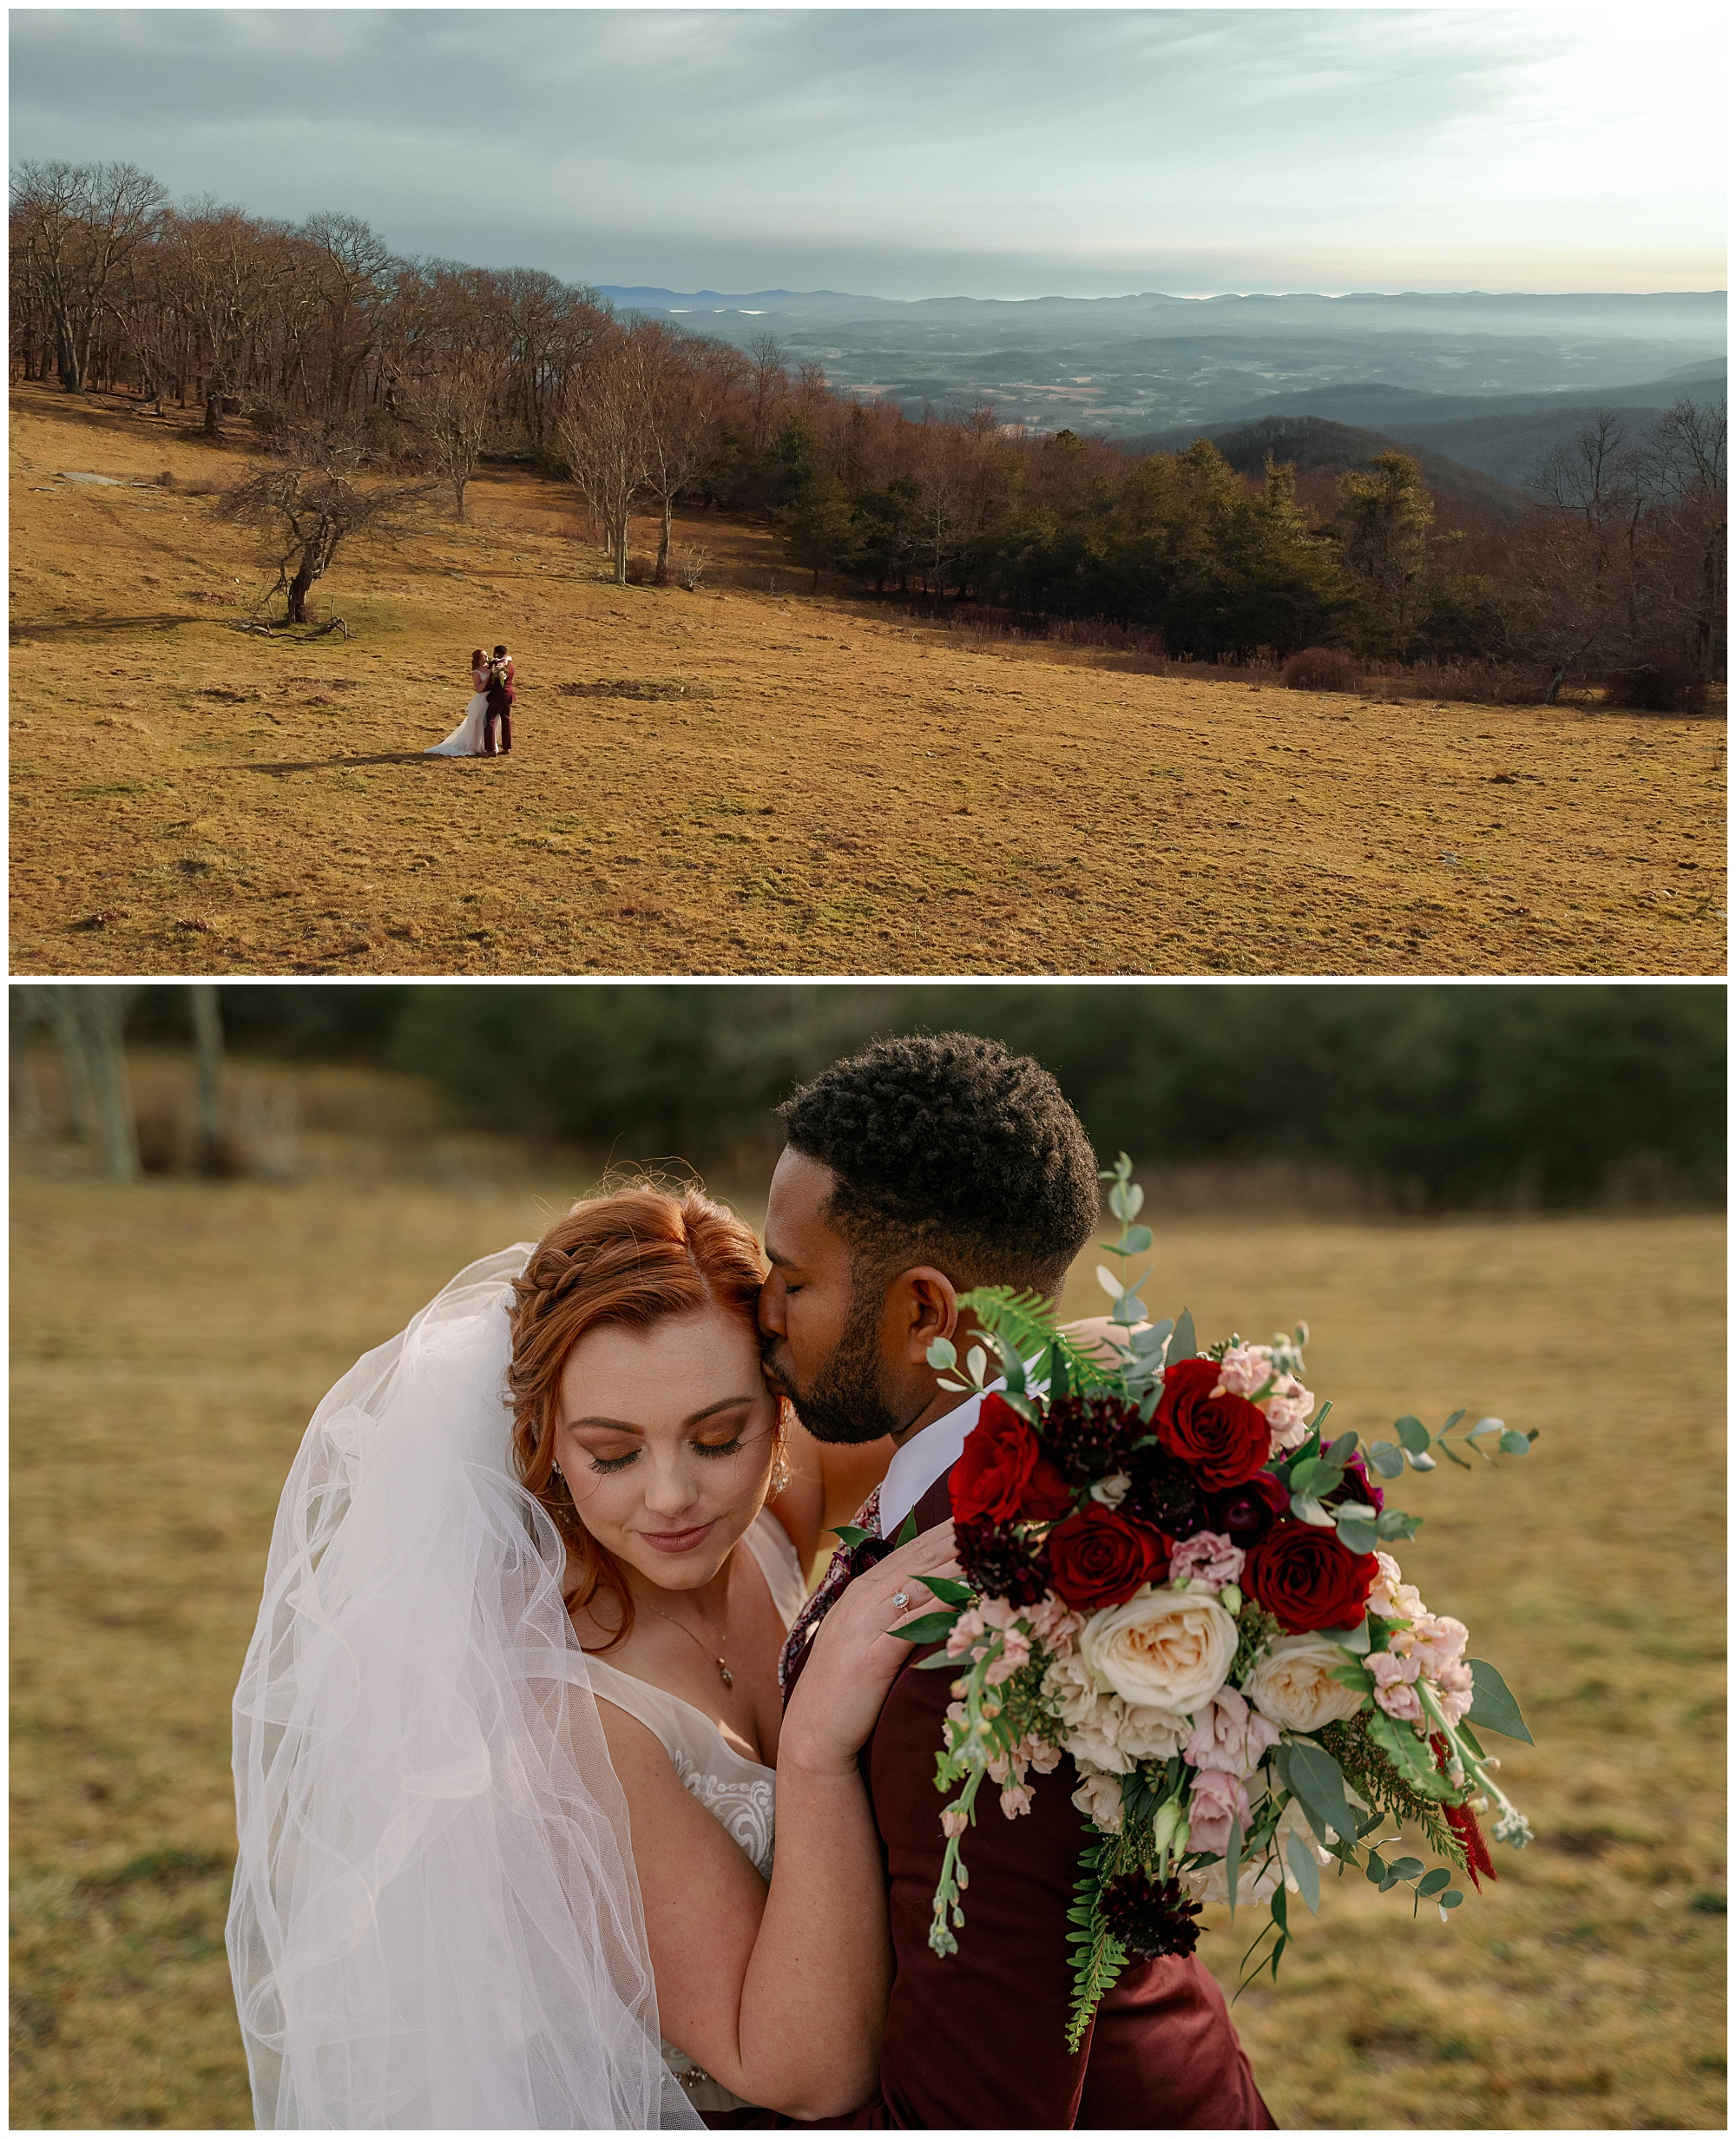 very wide shot of the bride and groom with mountain views, and then a closeup of the groom kissing the bride on the forehead